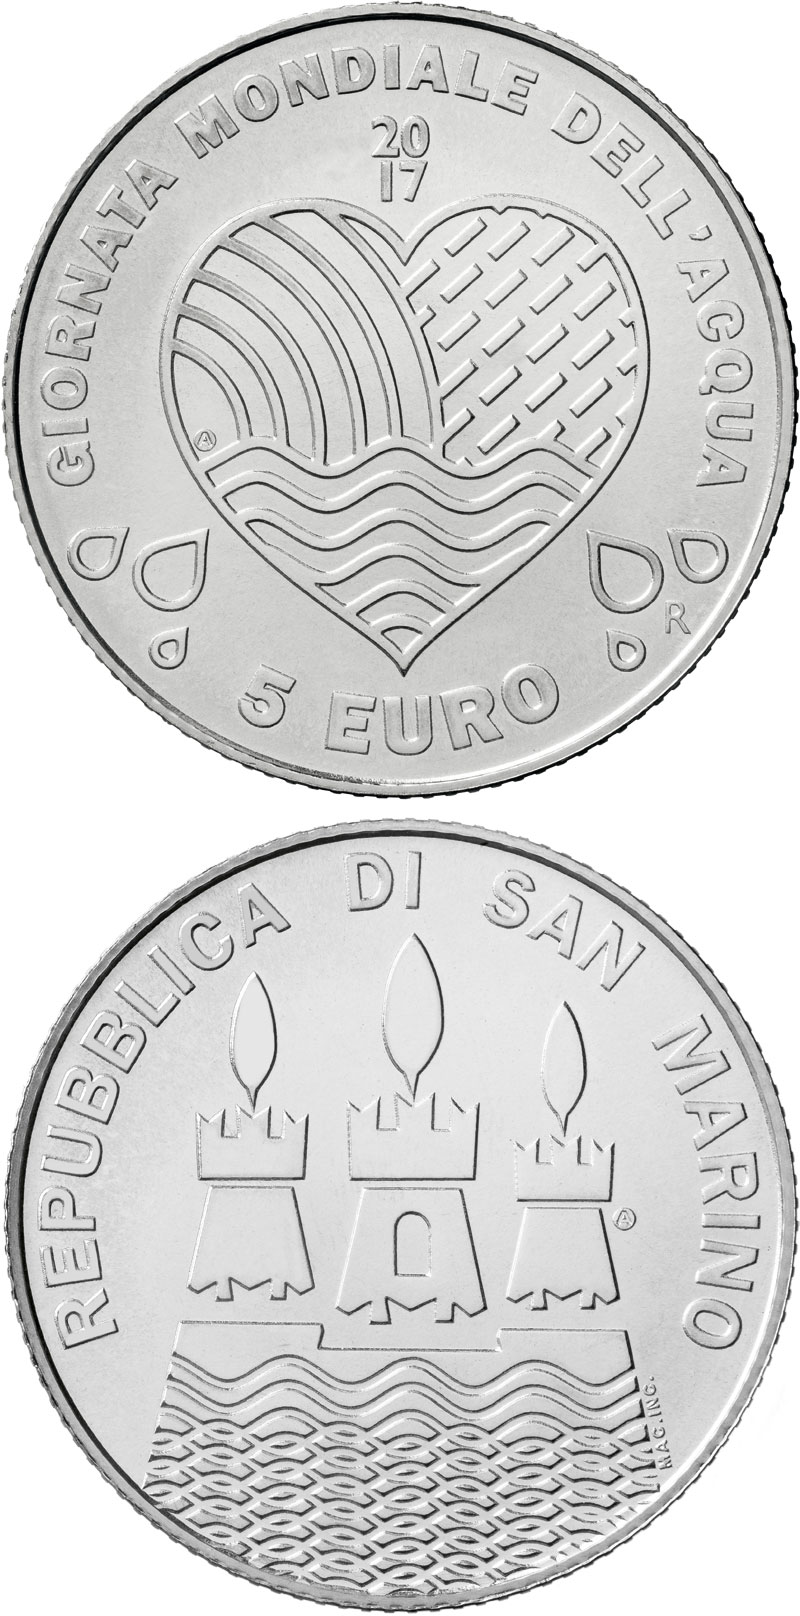 Image of 5 euro coin - World Water Day | San Marino 2017.  The Silver coin is of BU quality.